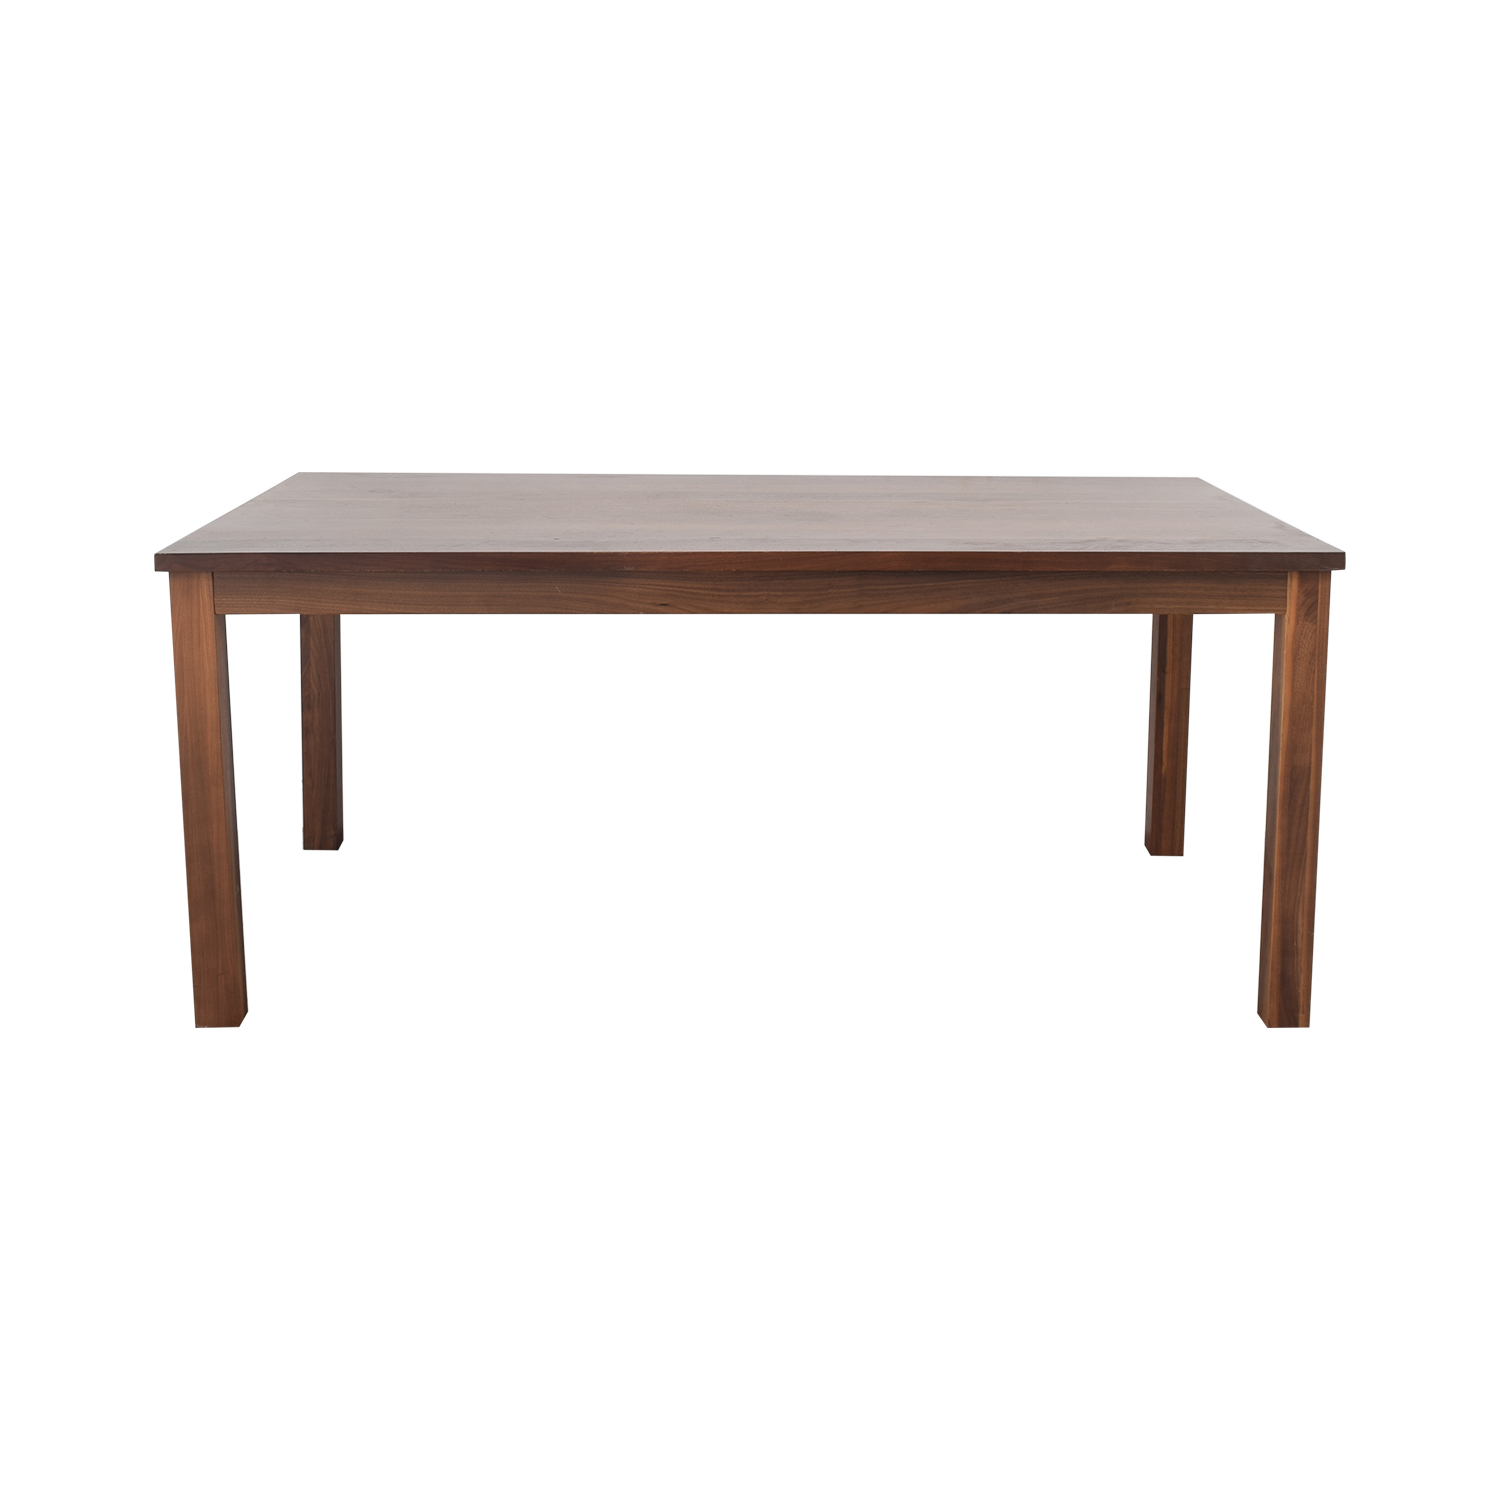 buy Lyndon Furniture Lyndon Furniture Rectangular Dining Table online